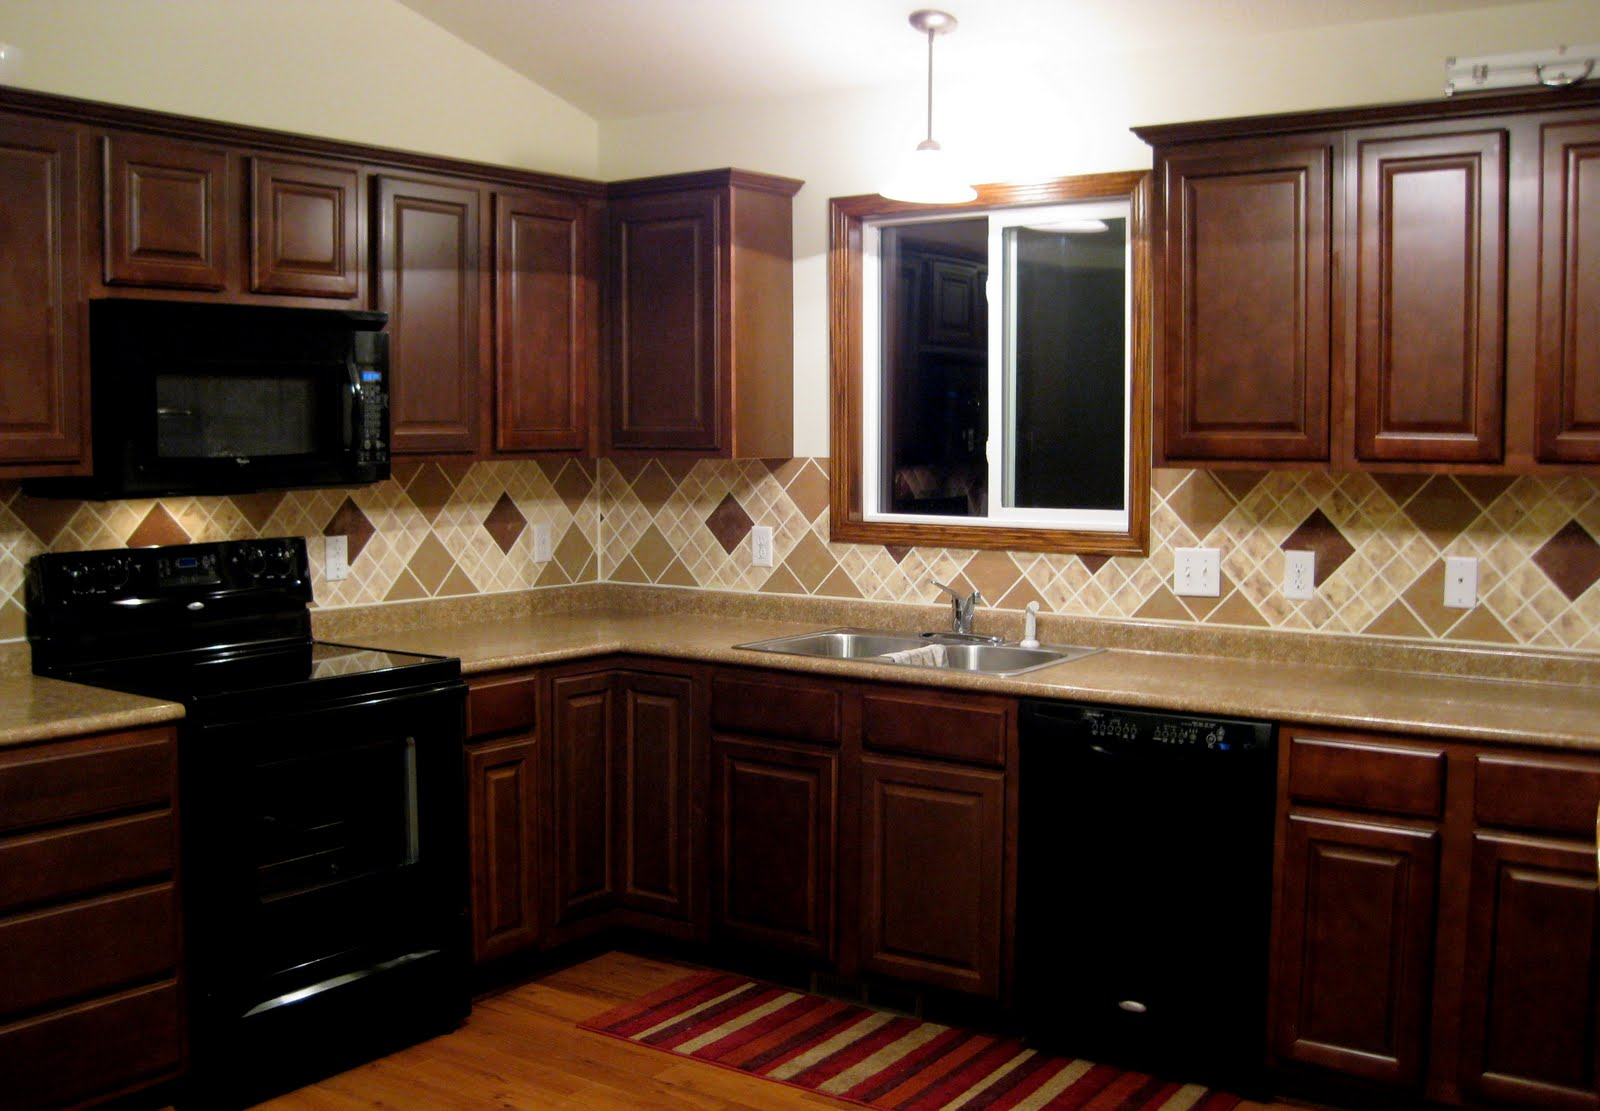 Image of: kitchen backsplash designs with dark cabinets